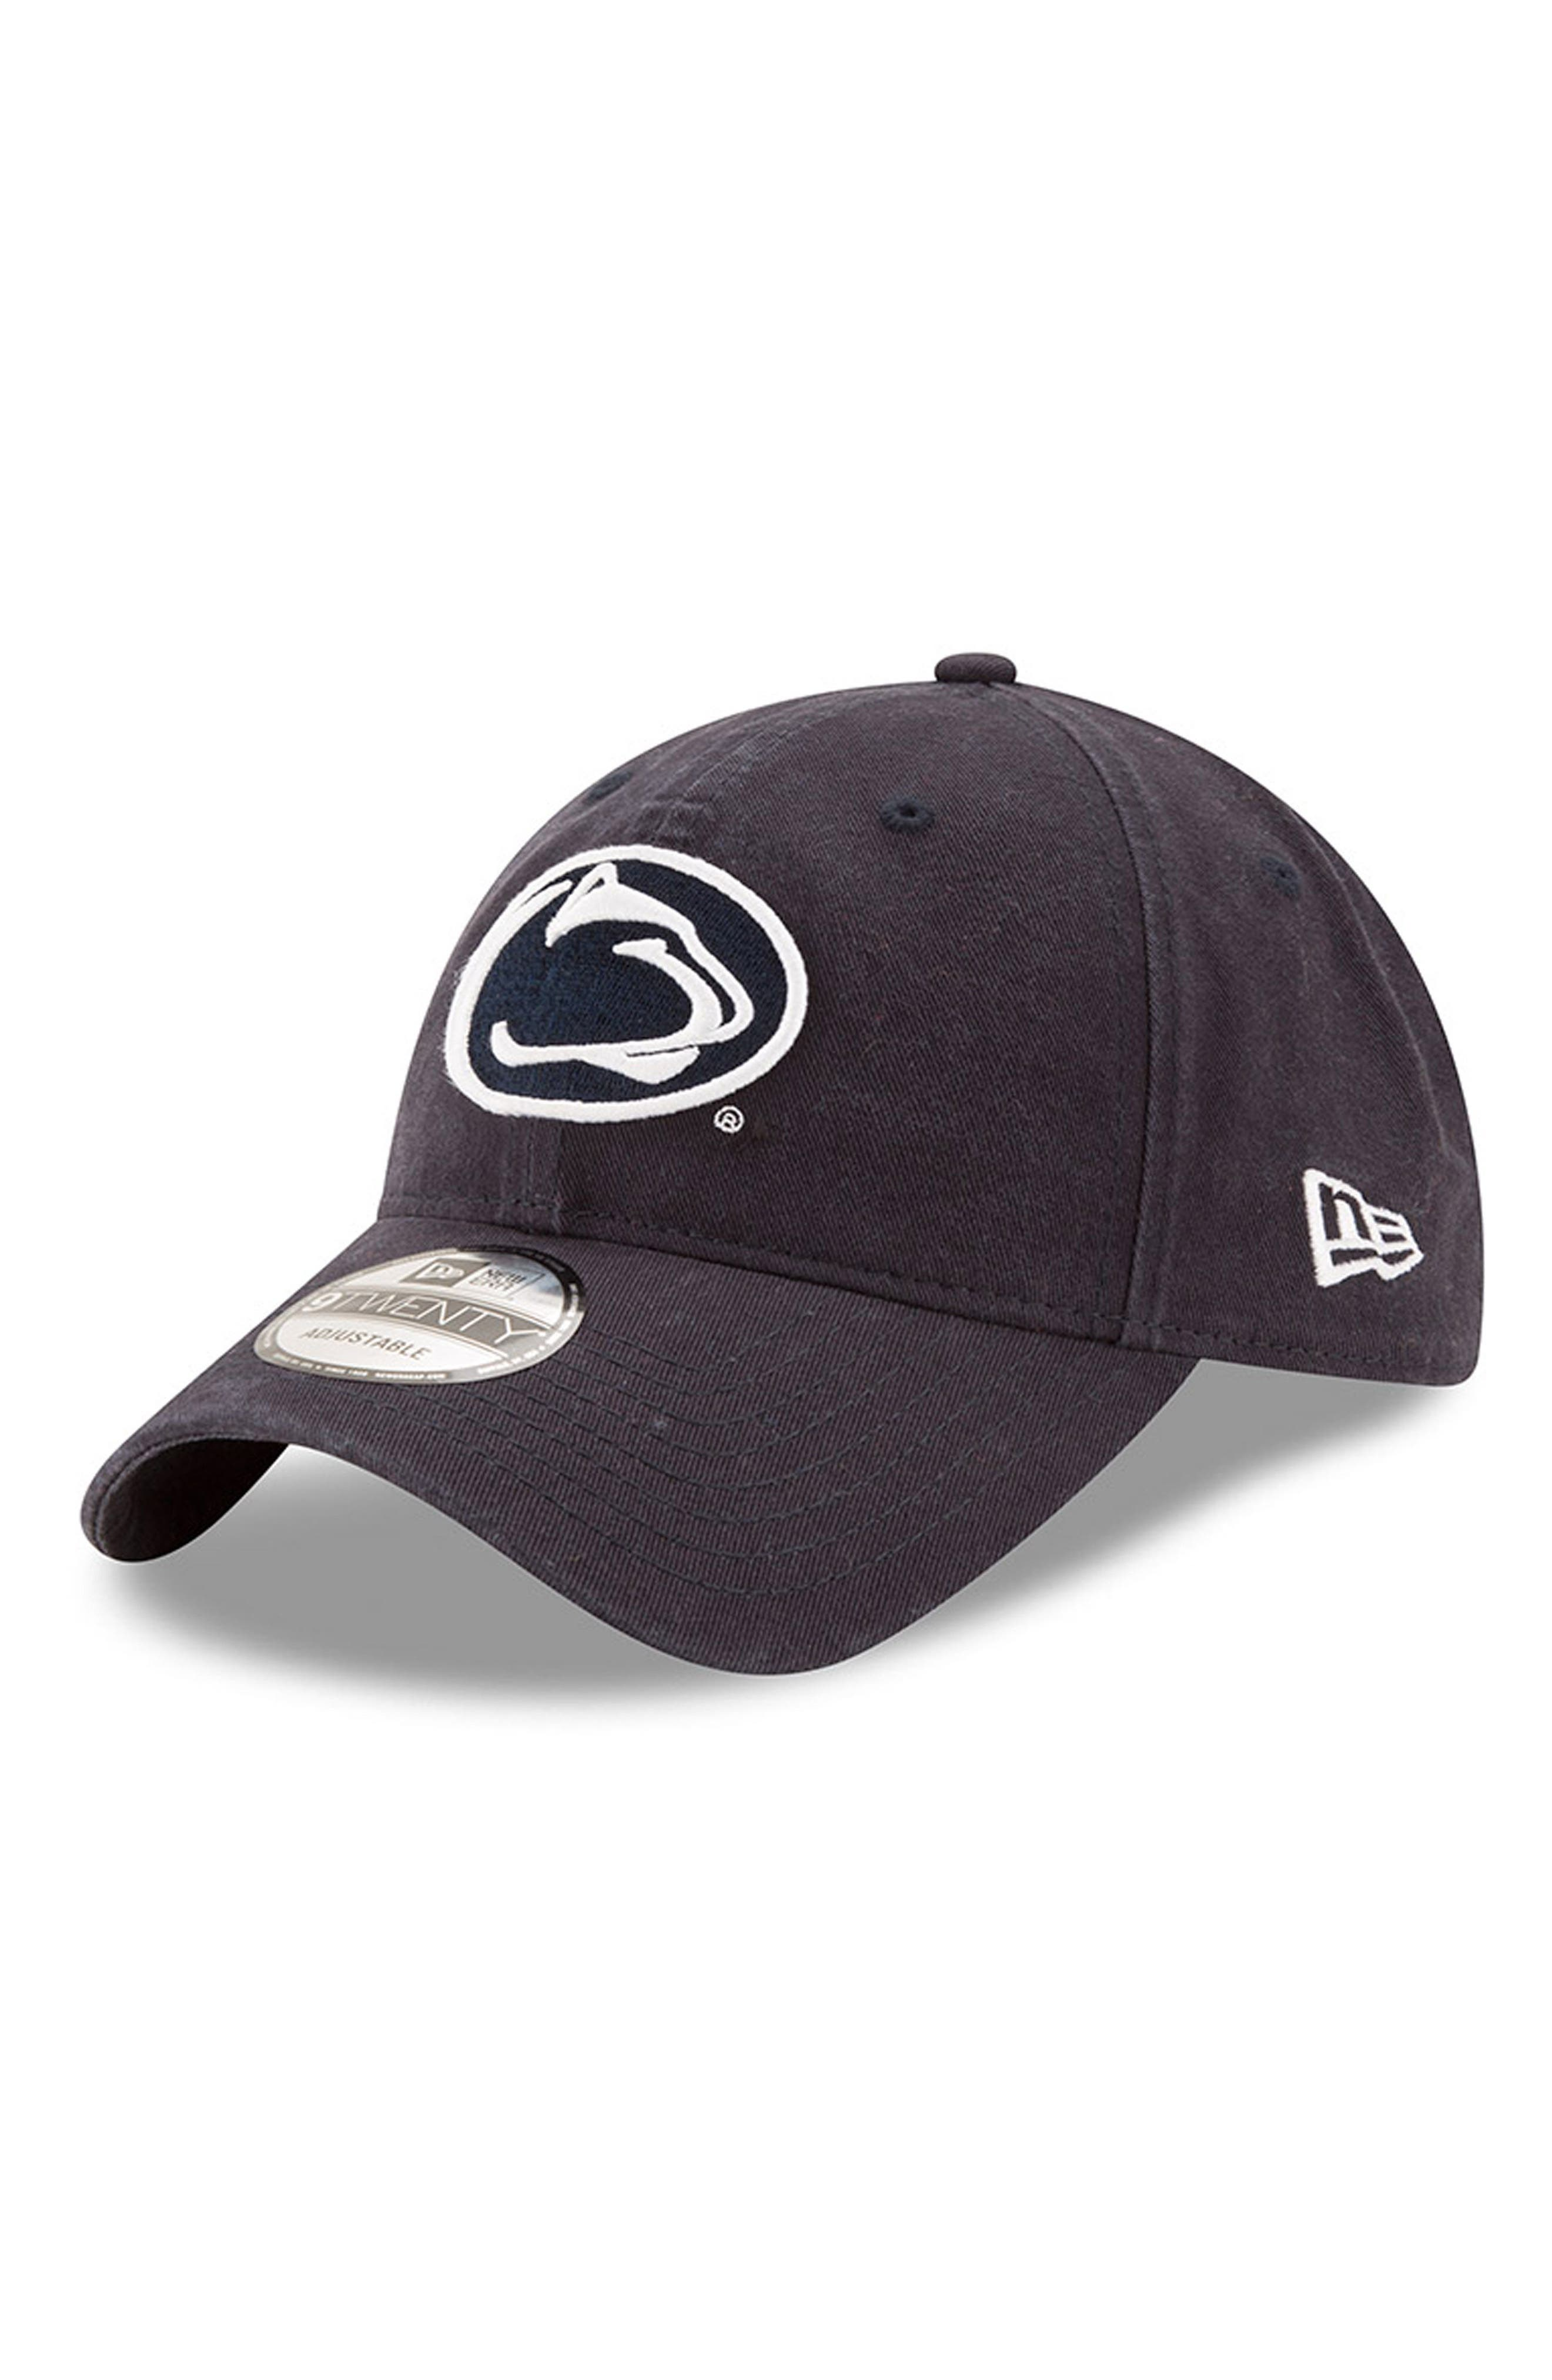 New Era Collegiate Core Classic - Penn State Nittany Lions Baseball Cap,                         Main,                         color, Penn State Nittany Lions